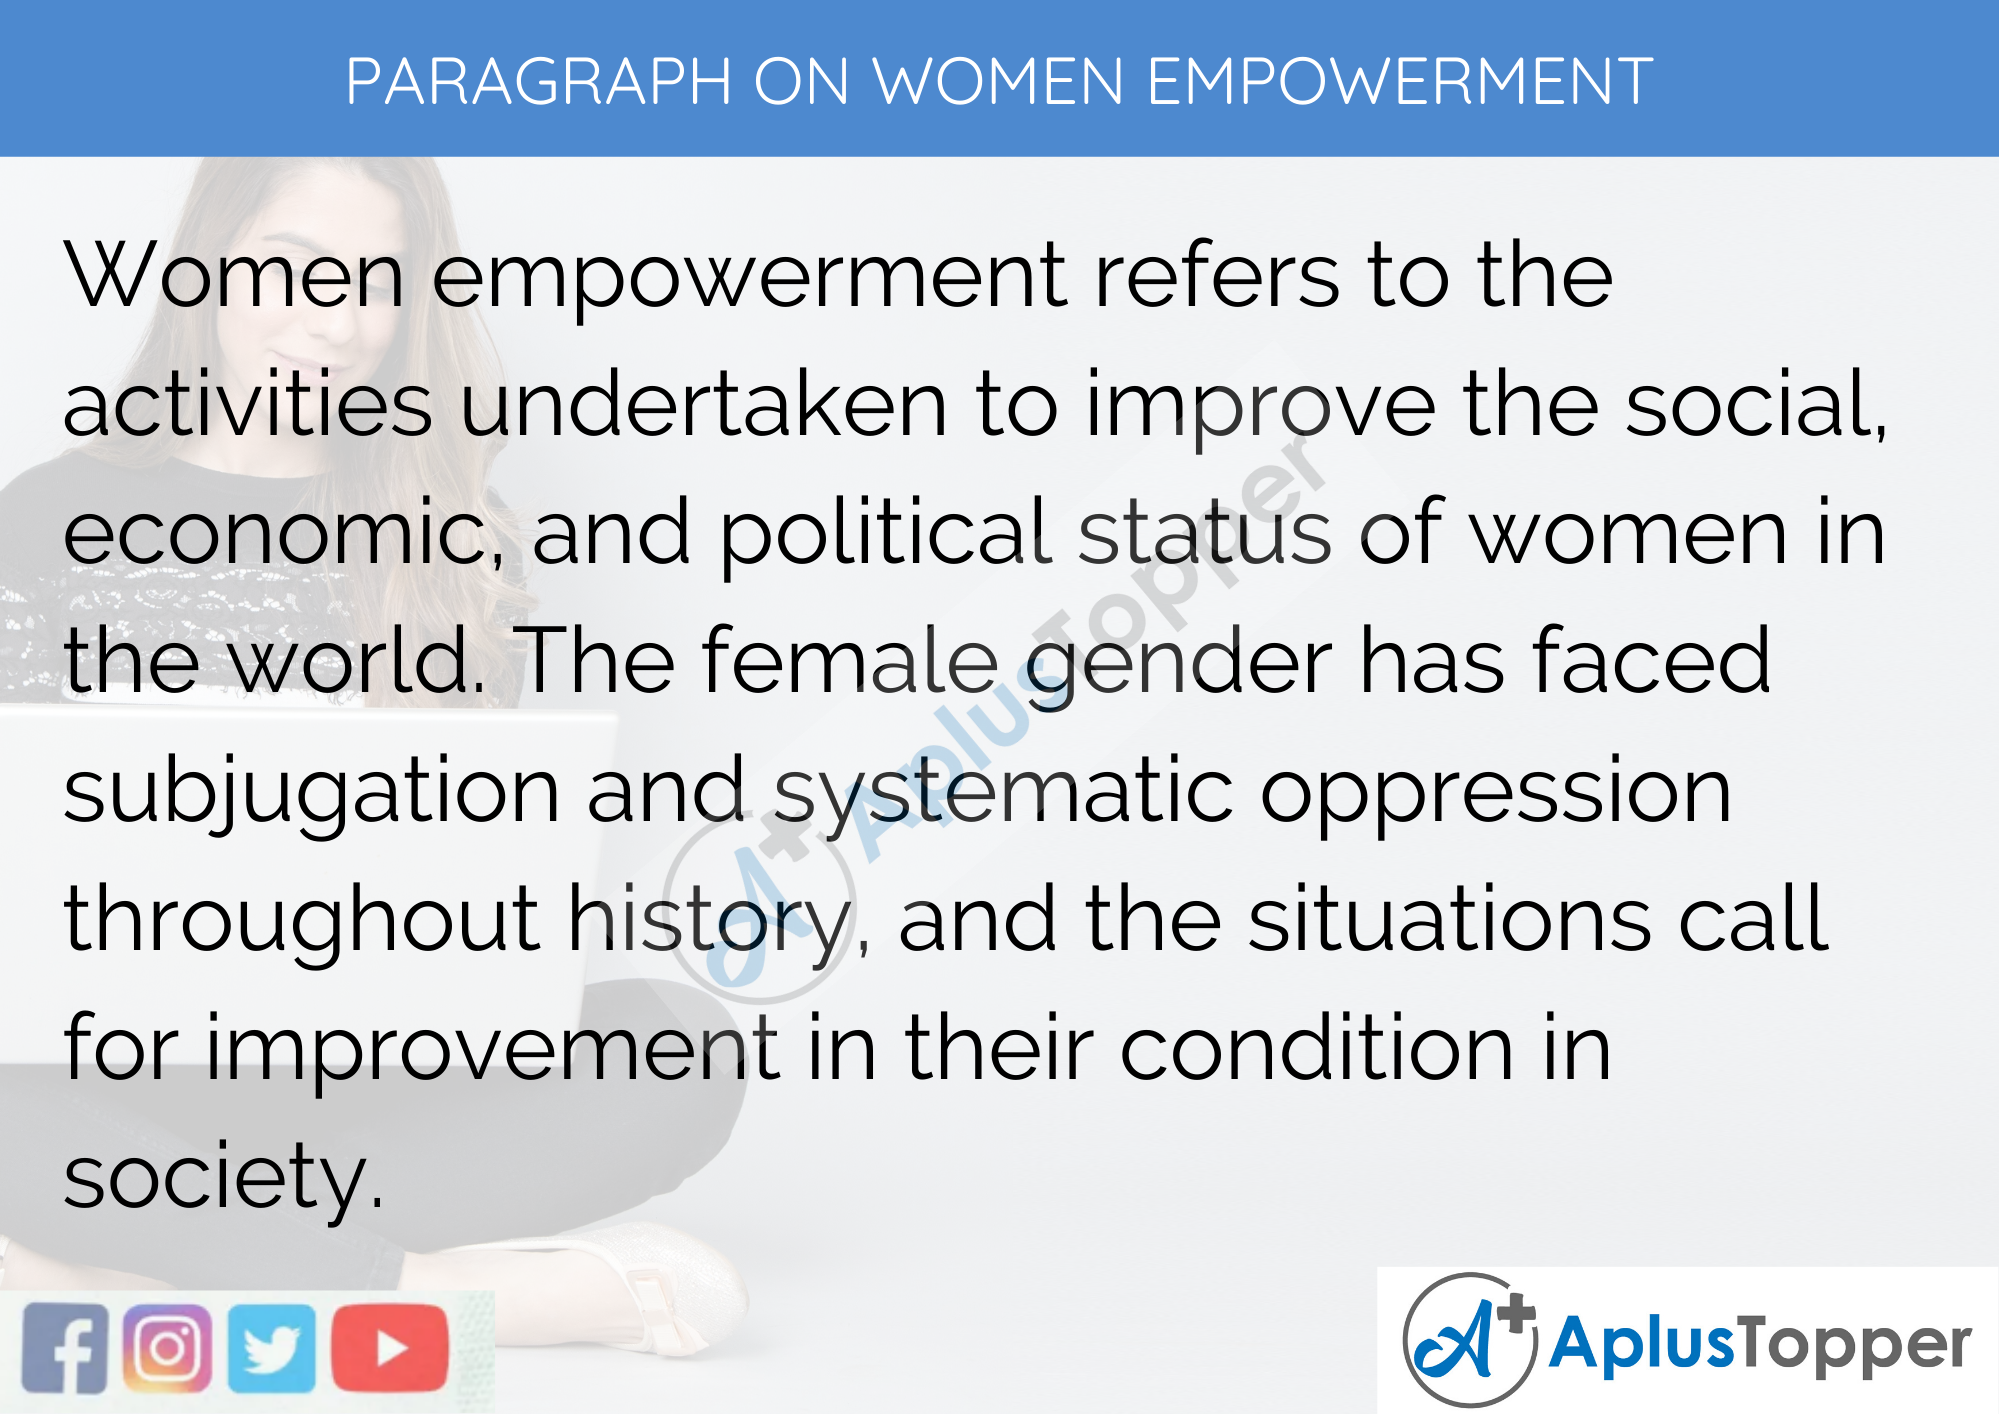 Essay of women empowerment in india how to write not equal to in c language